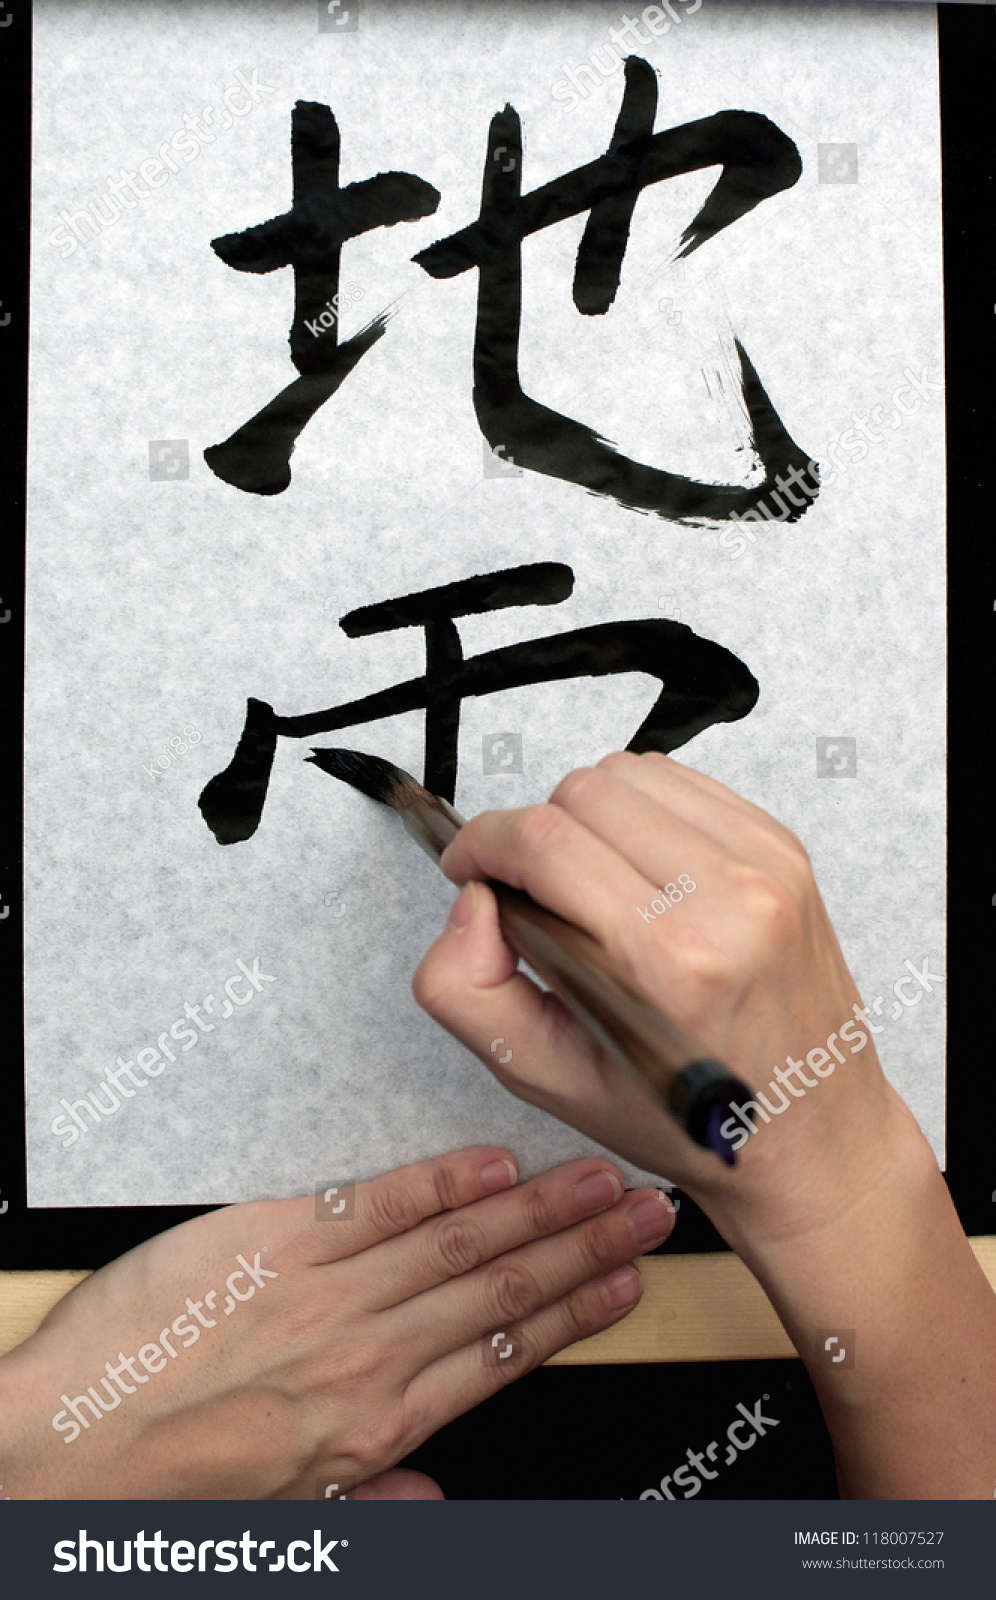 Traditional Japanese Calligraphy Artistically Written